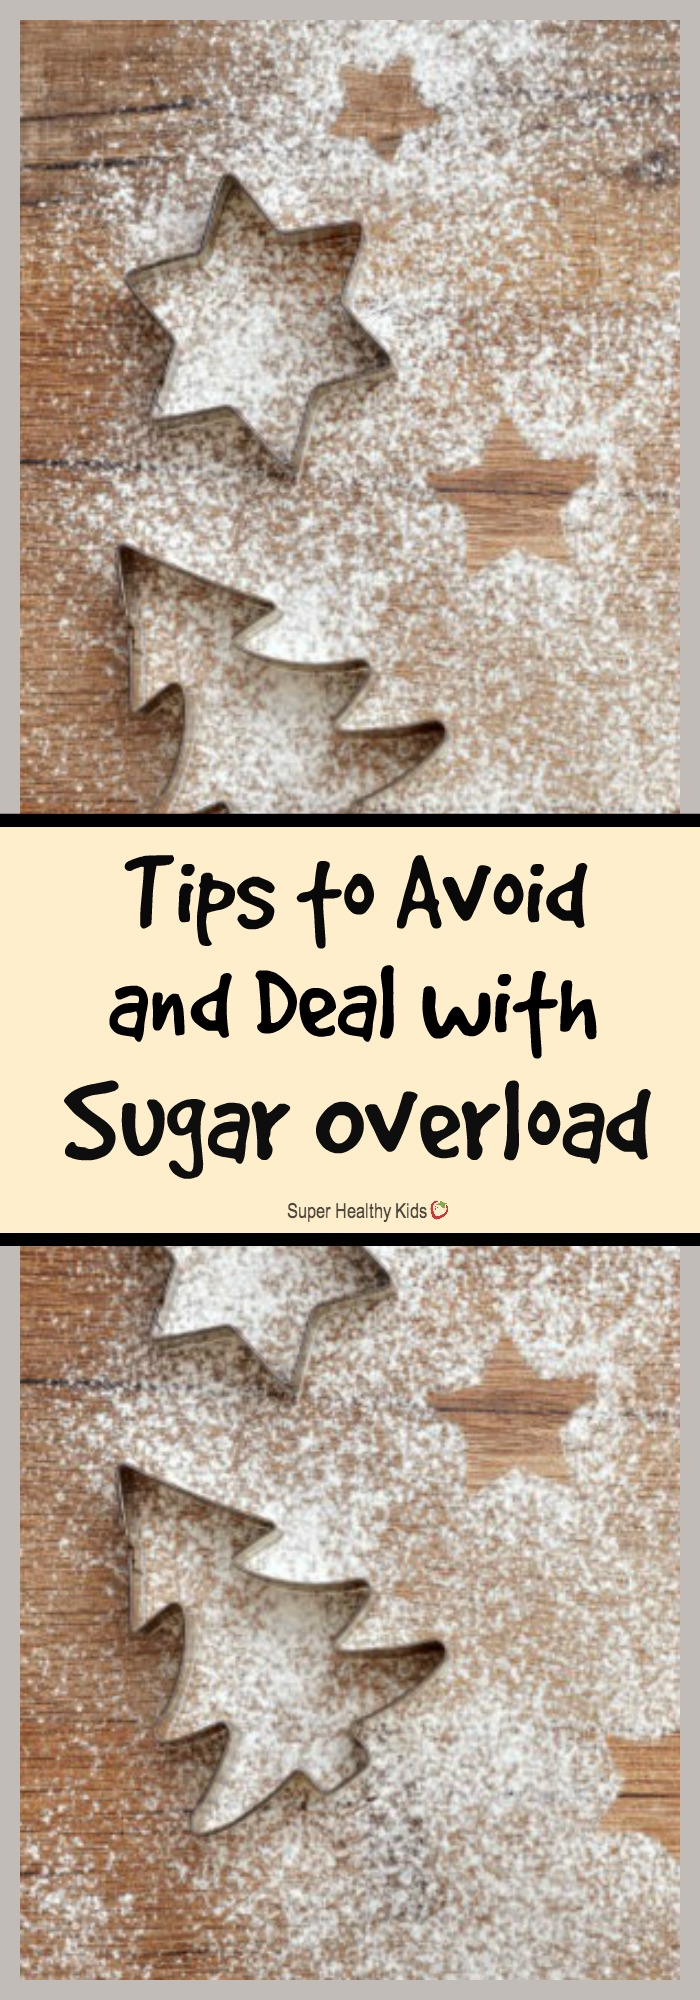 MOM TIPS - Tips to Avoid and Deal with Sugar Overload. Now you can enjoy the seasonal sugary delights while avoiding holiday sugar overload. http://www.superhealthykids.com/tips-avoid-deal-sugar-overload/